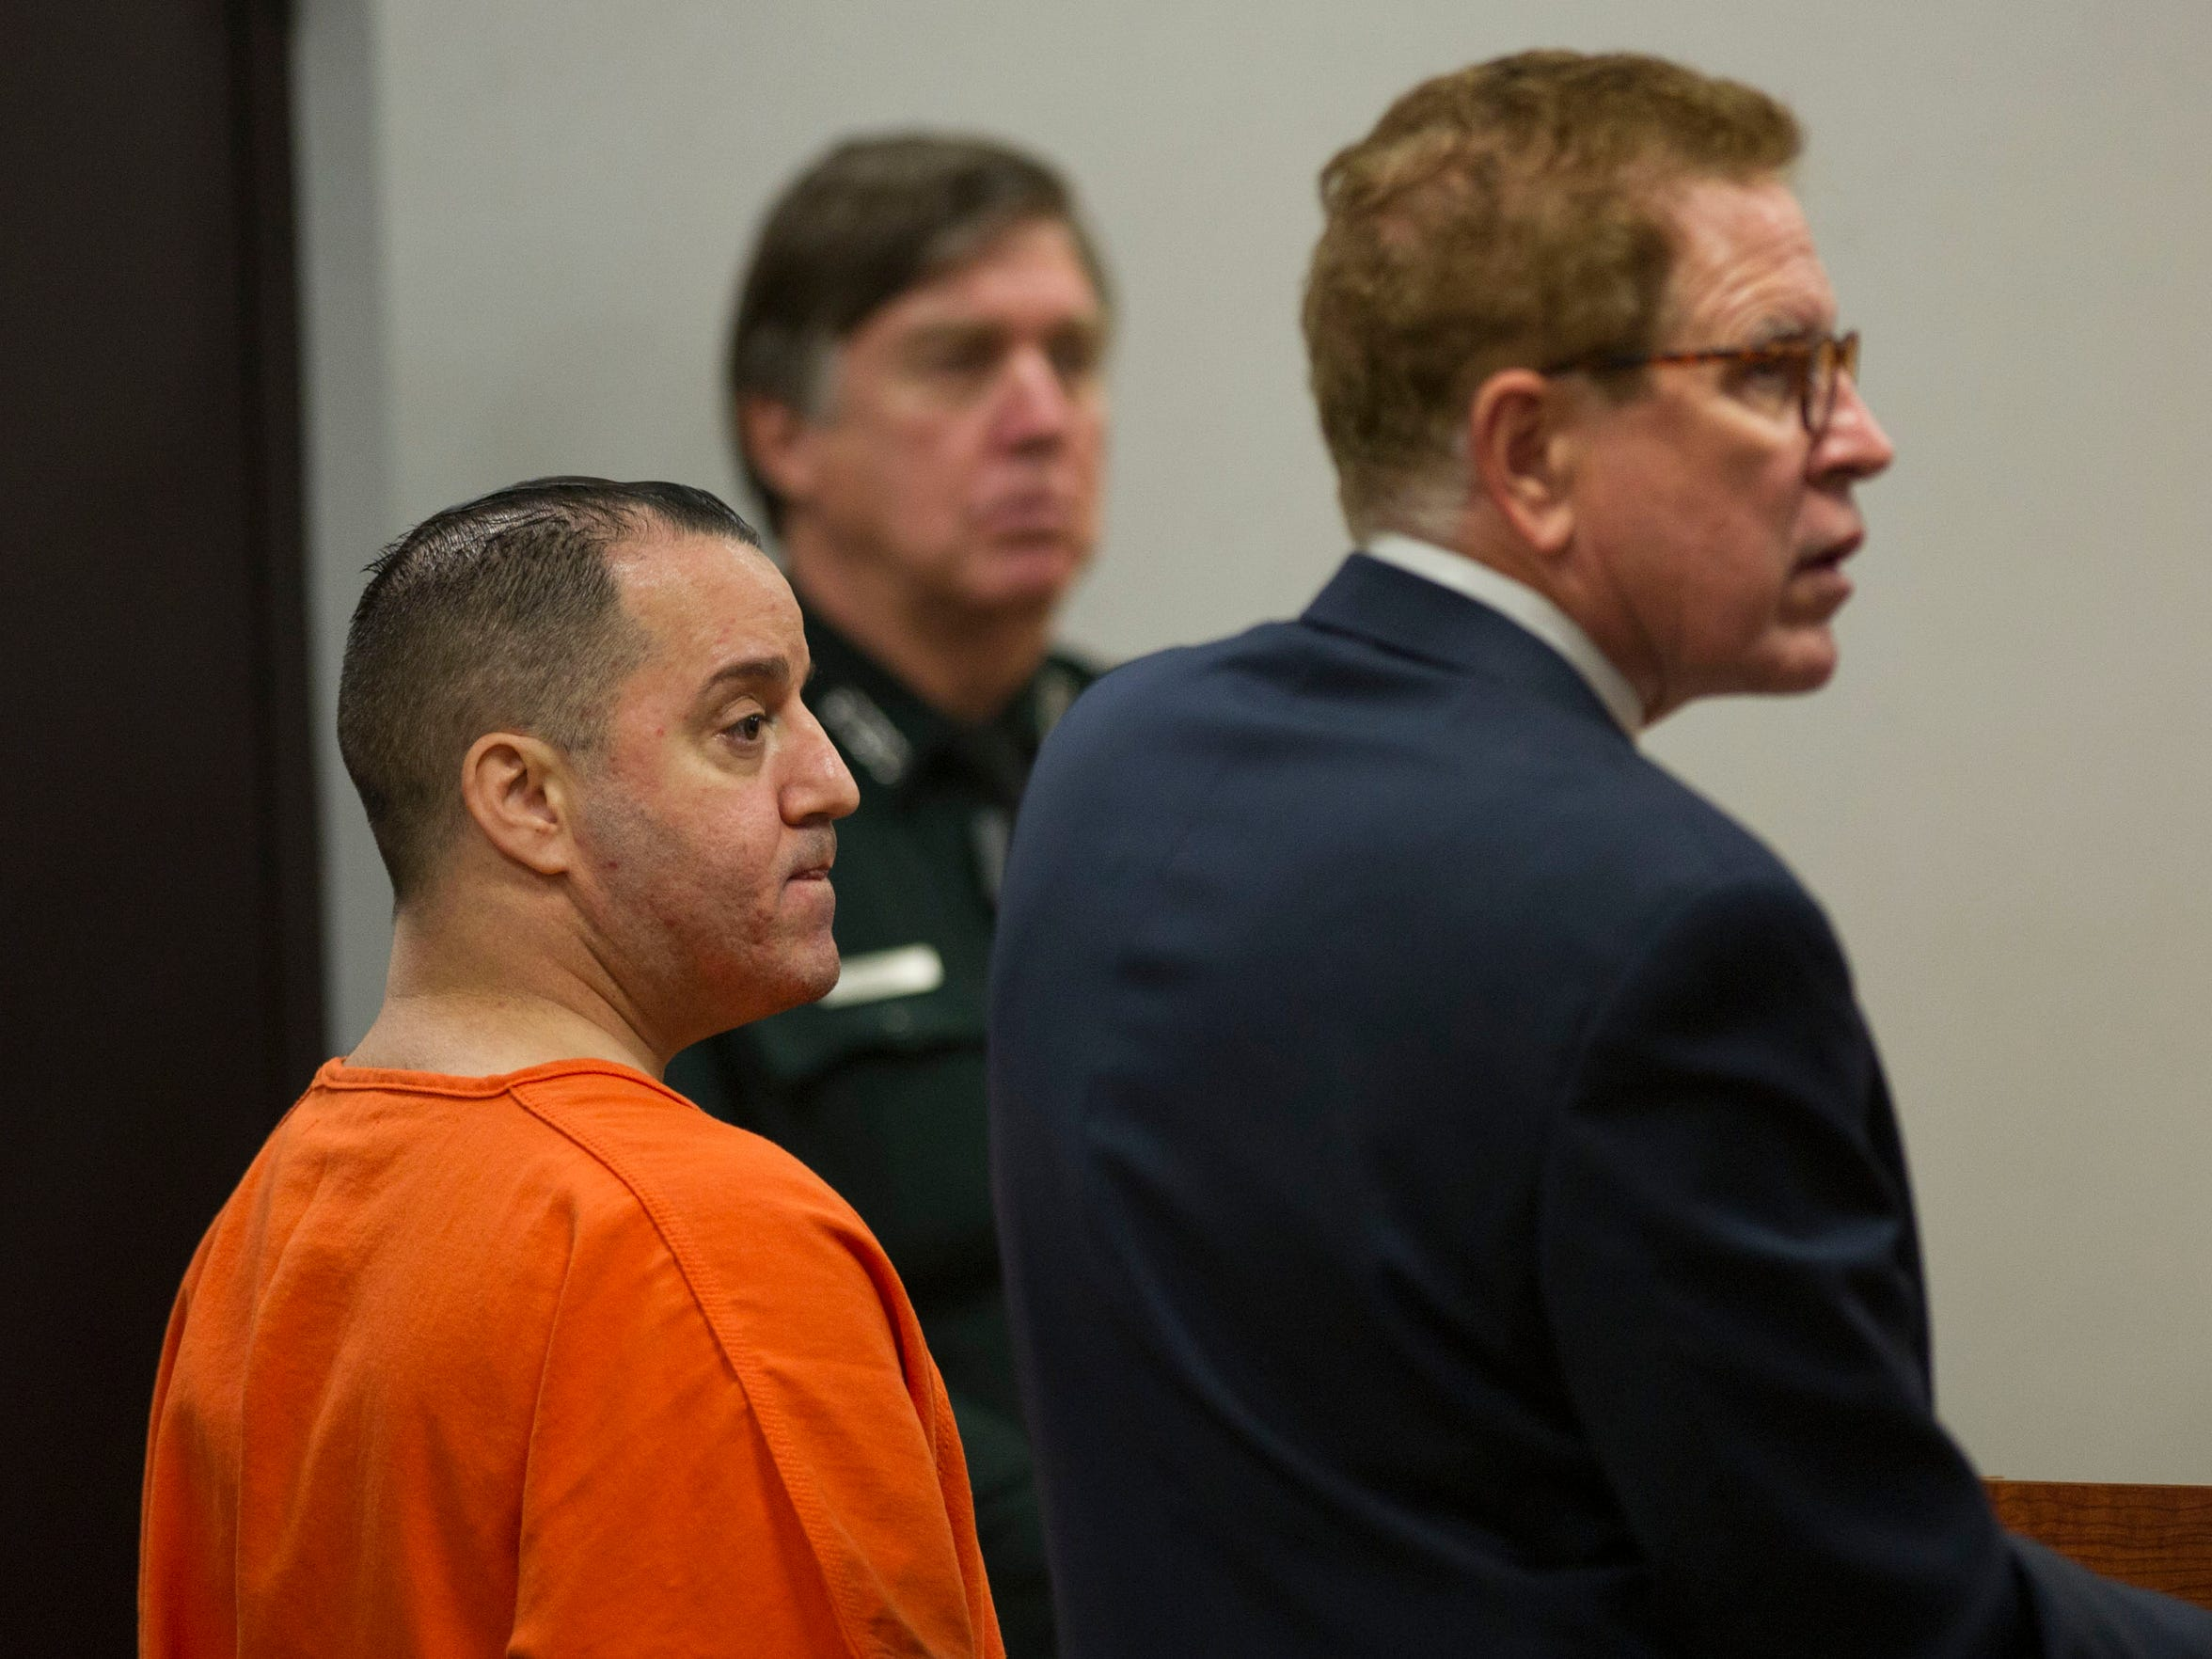 Victor Brancaccio (left), and his defense attorney